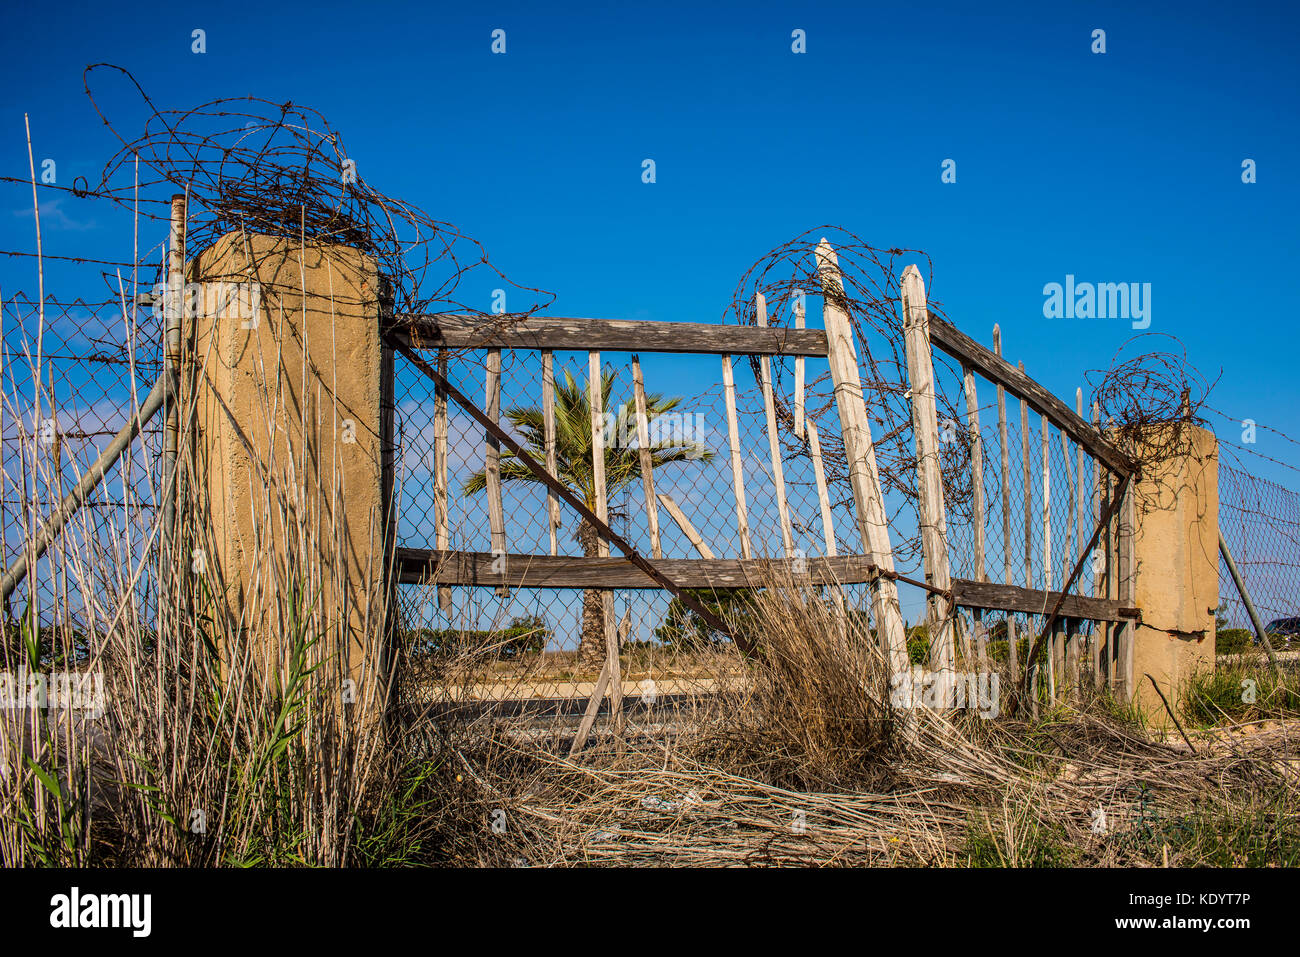 Old Wooden Fence Barbed Wire Stock Photos Amp Old Wooden